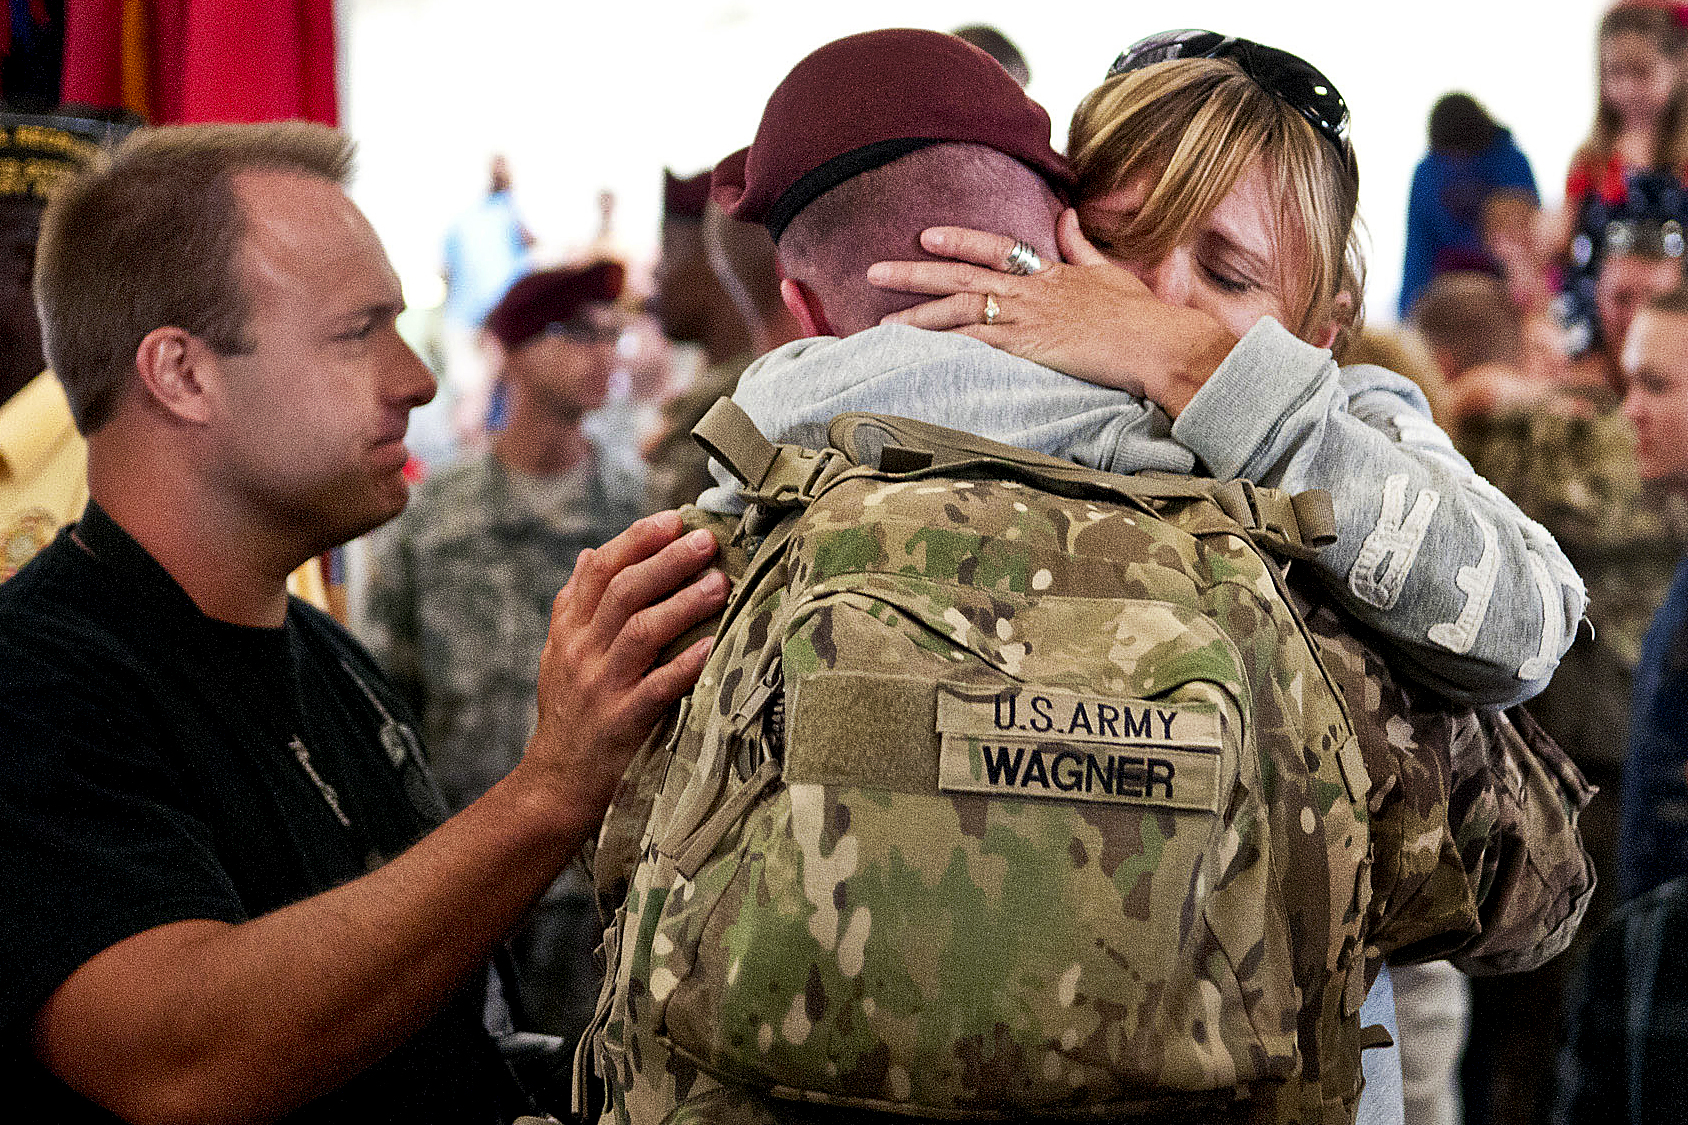 itun soldier homecoming heartwarming - HD 1688×1125